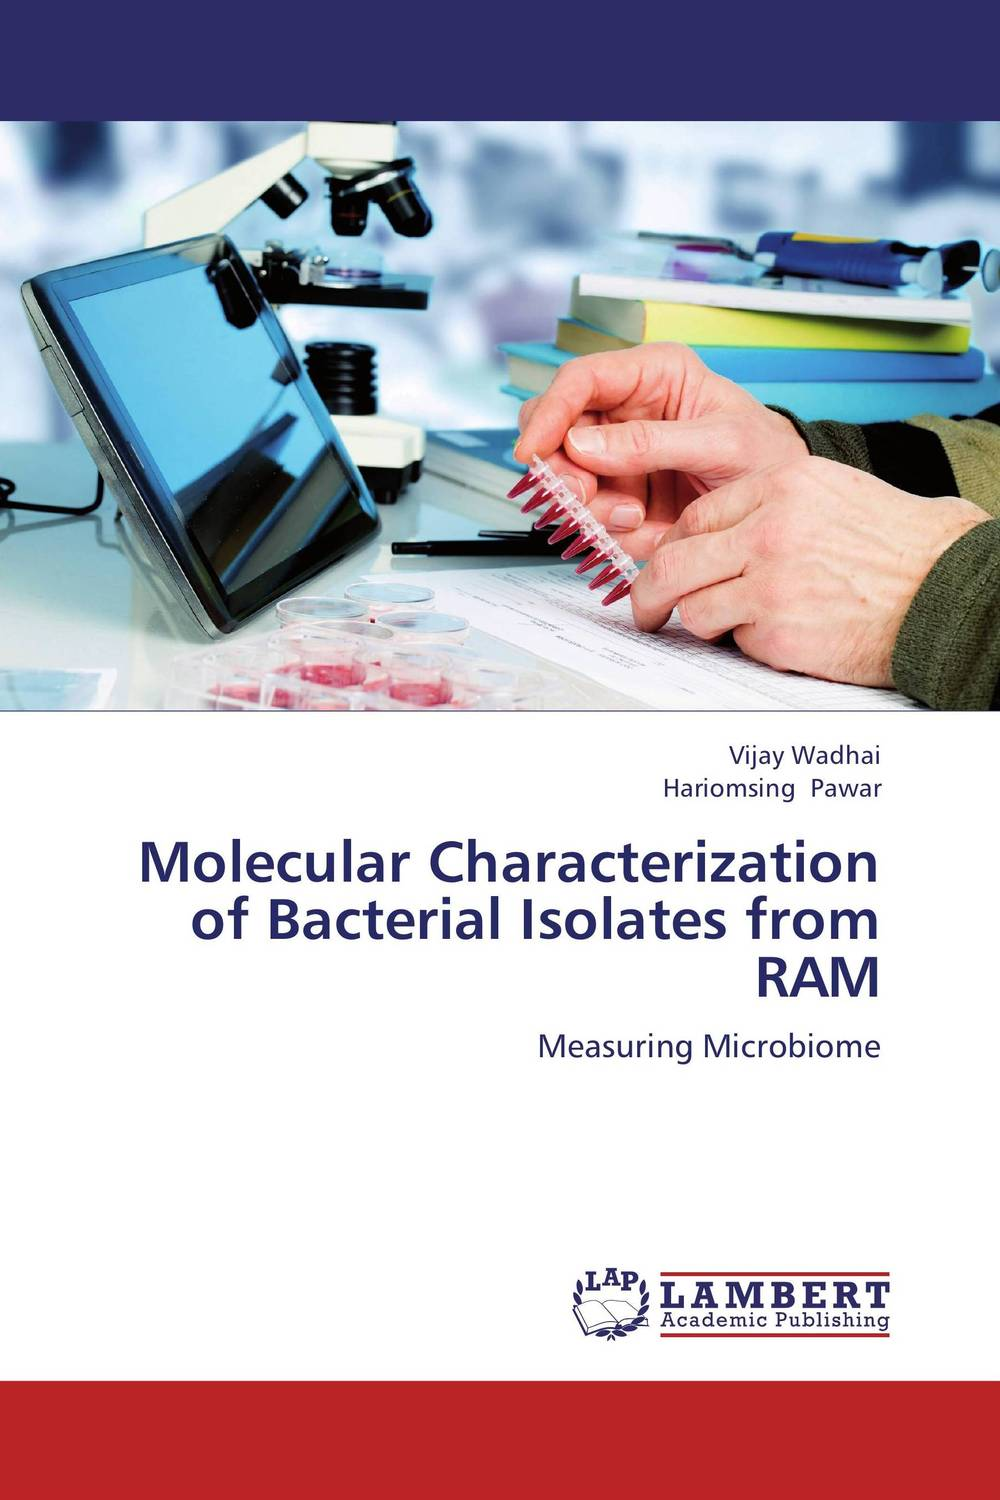 Molecular Characterization of Bacterial Isolates from RAM analysis of bacterial colonization on gypsum casts